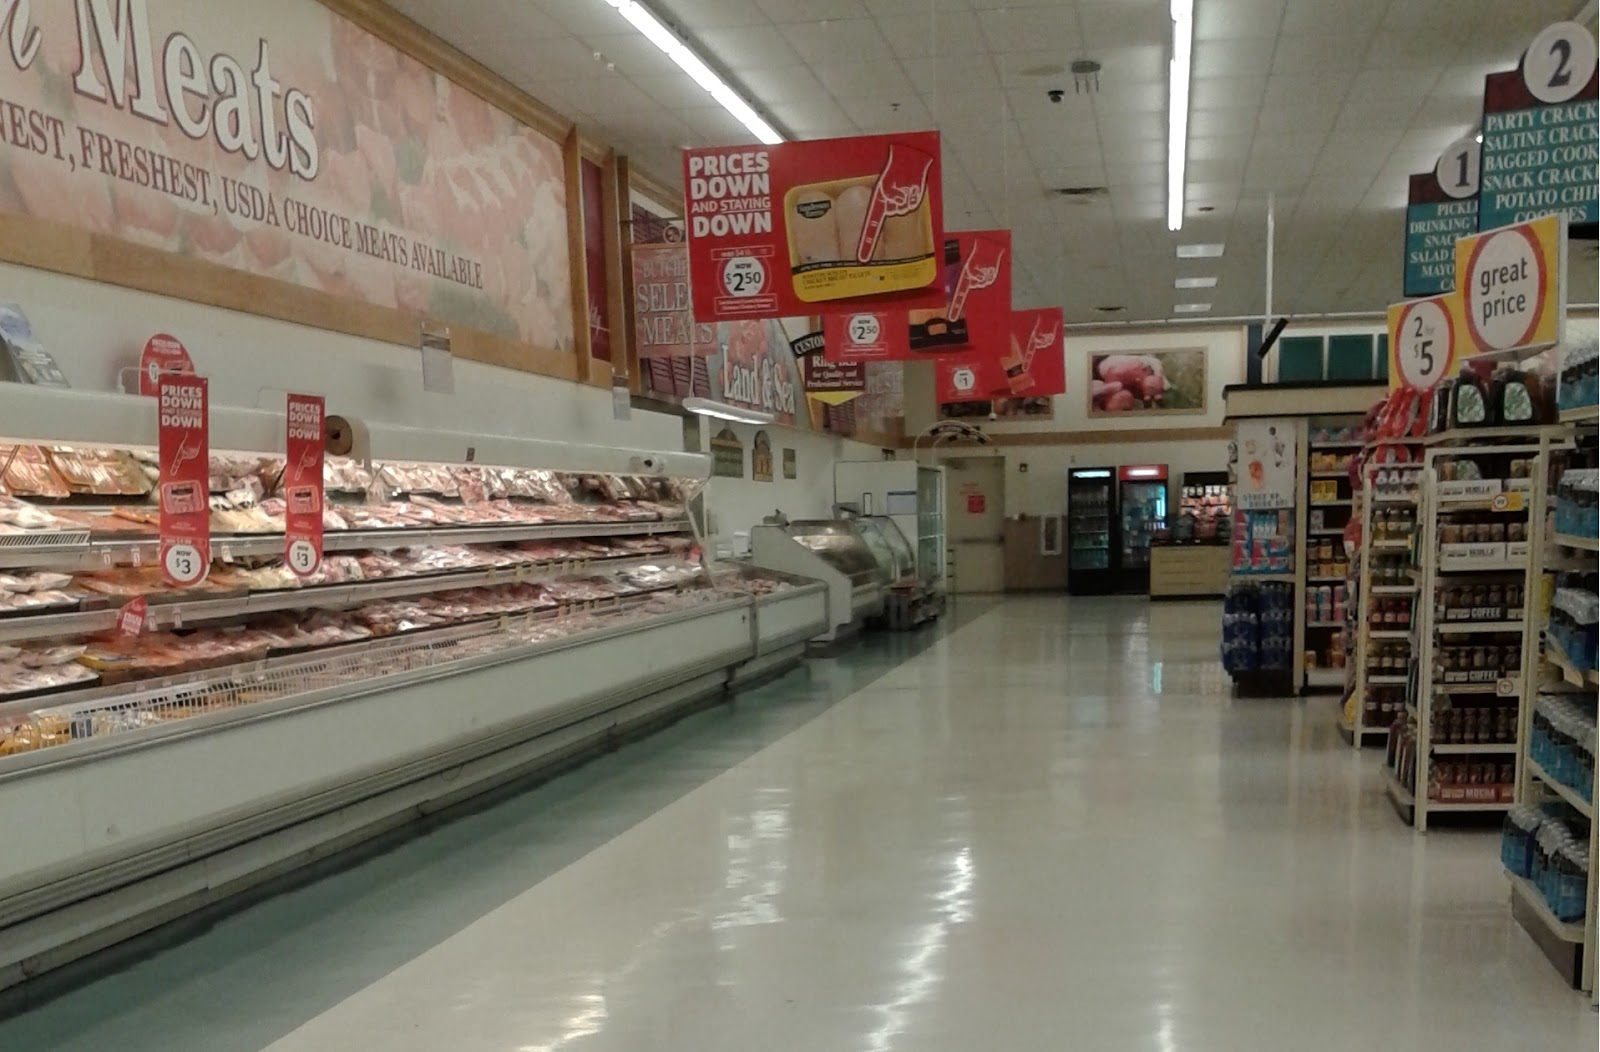 albertsons florida blog the rarest winn dixie interior and a final look at the back of the store before spending the rest of this post up front